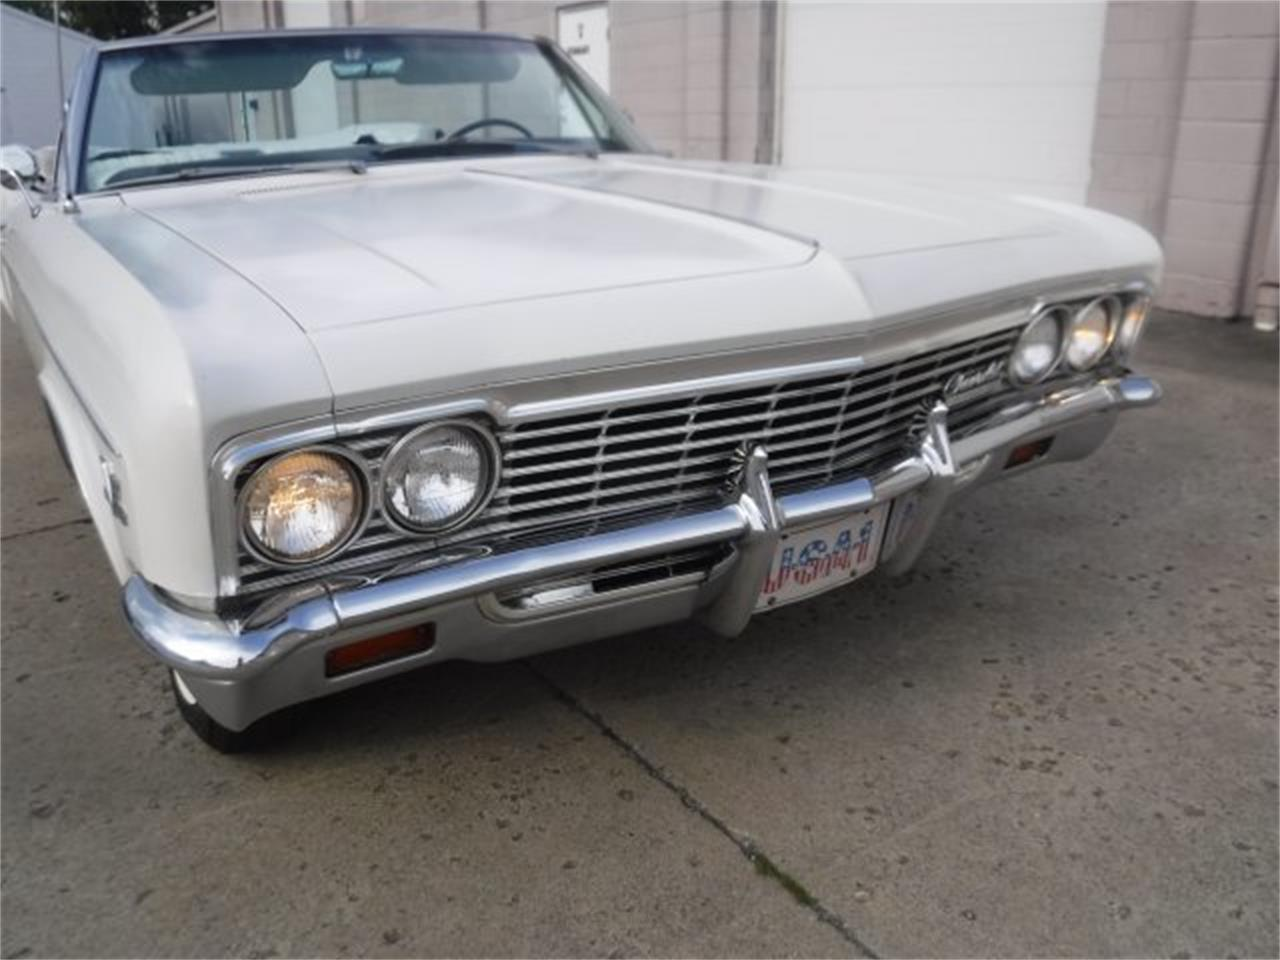 1966 Chevrolet Impala SS for sale in Milford, OH – photo 4